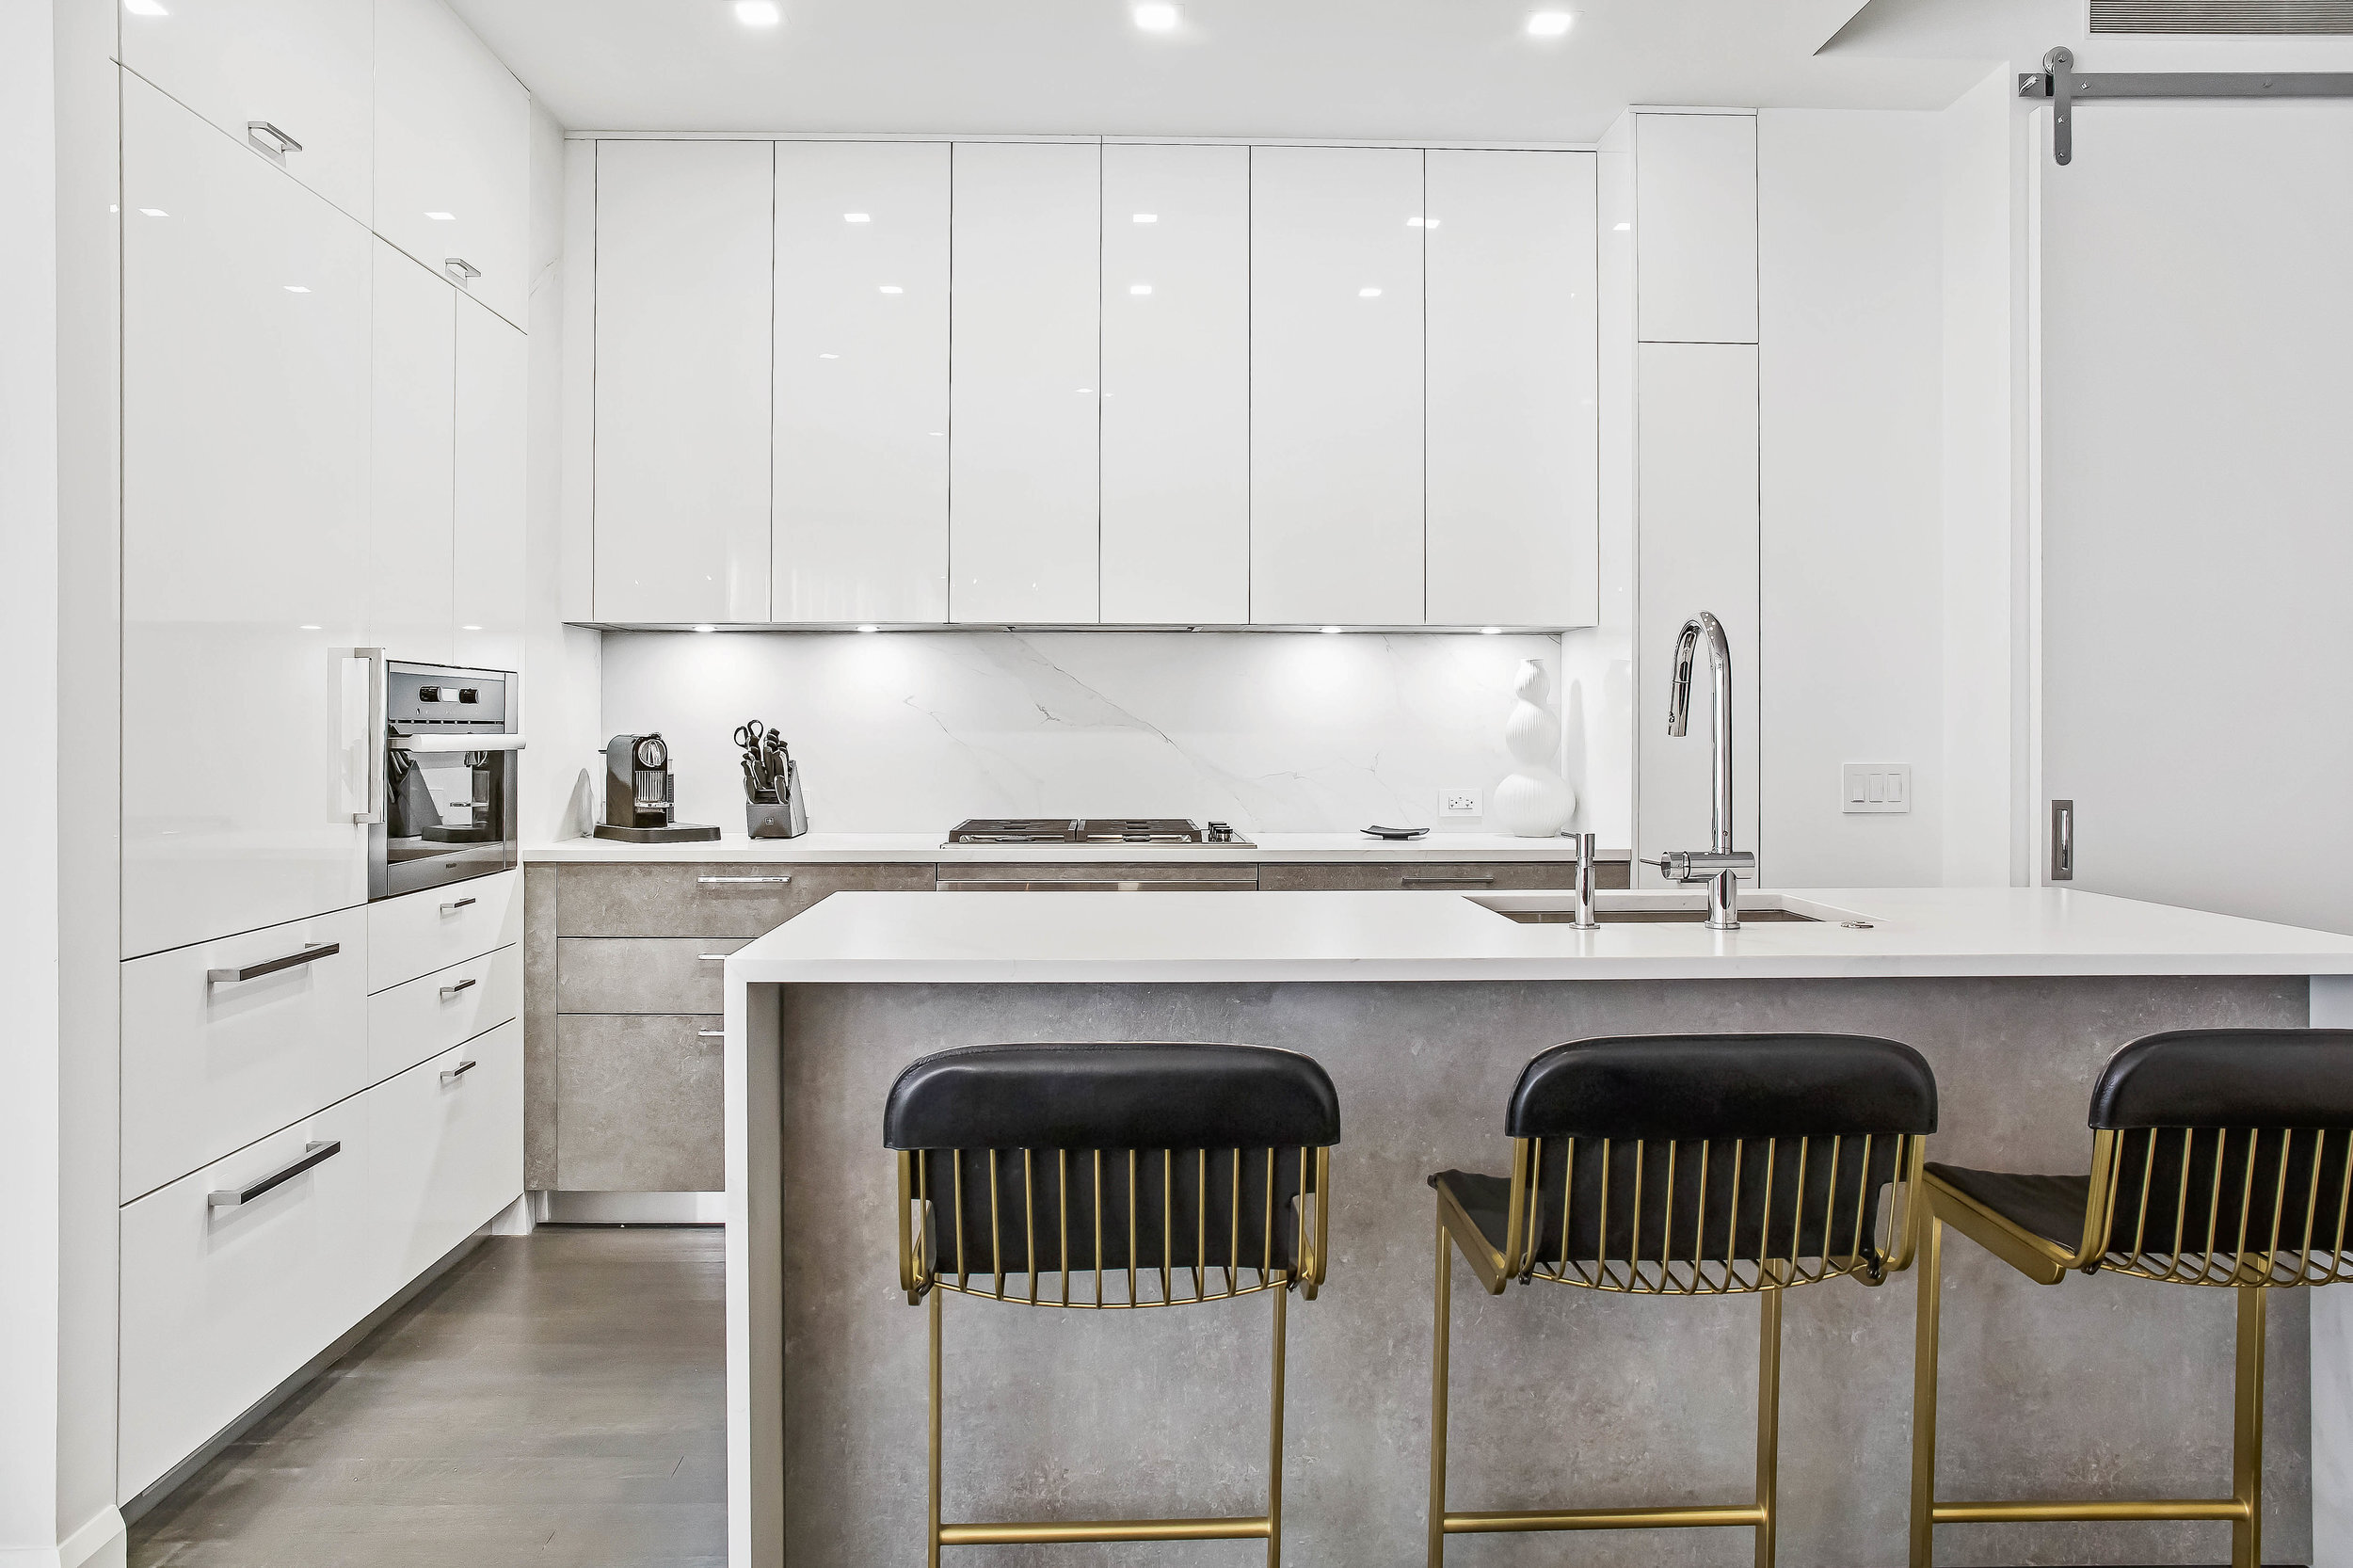 residential-projects-Chelsea-comp10.jpg